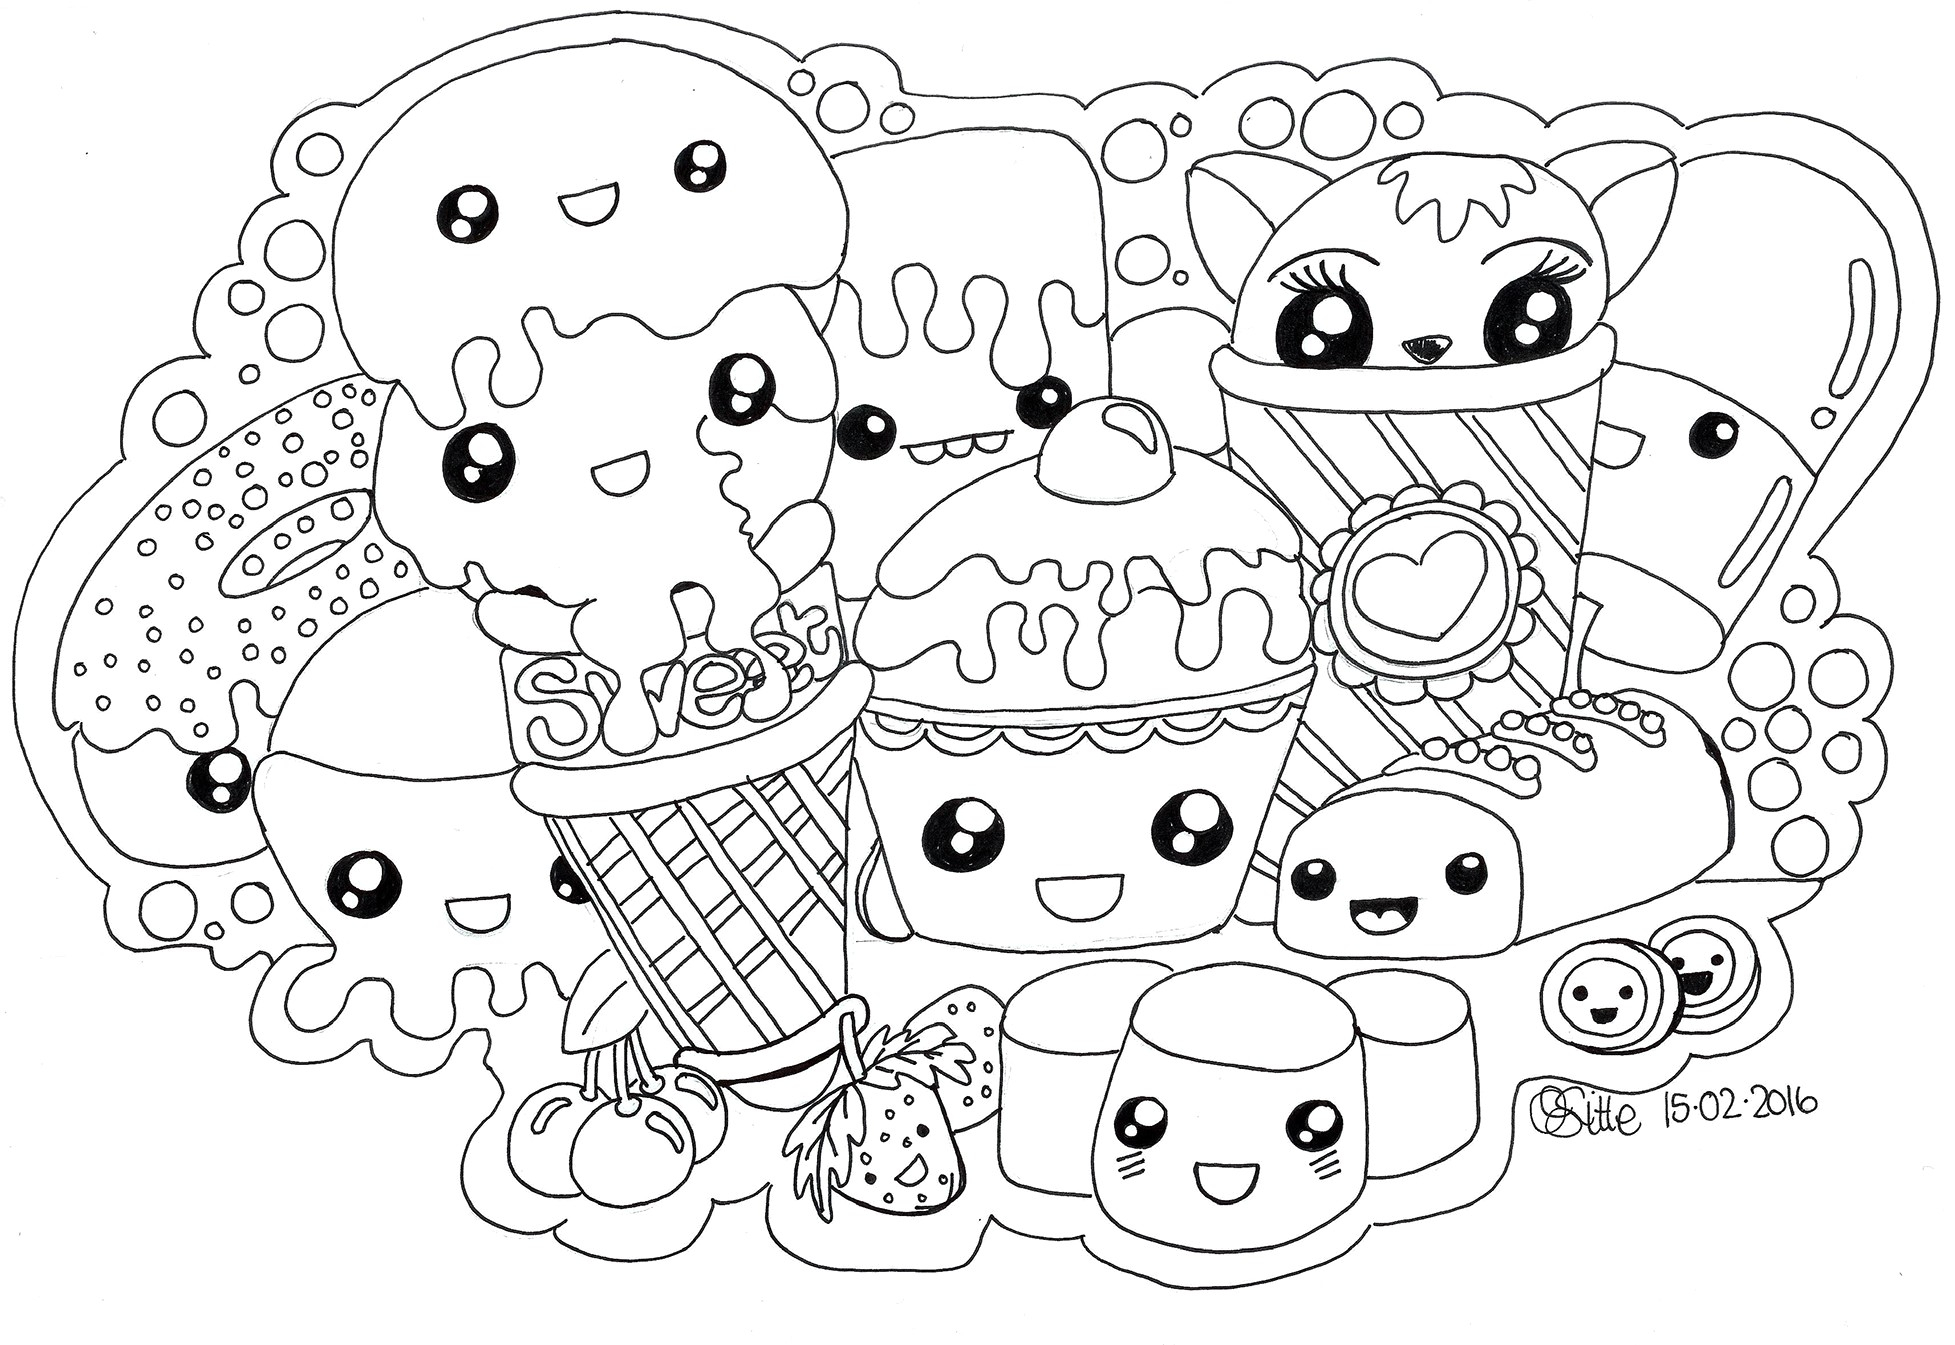 Cute Unicorn Coloring Pages Coloring Ideas Google Drive Download Fcps Classroom For Students